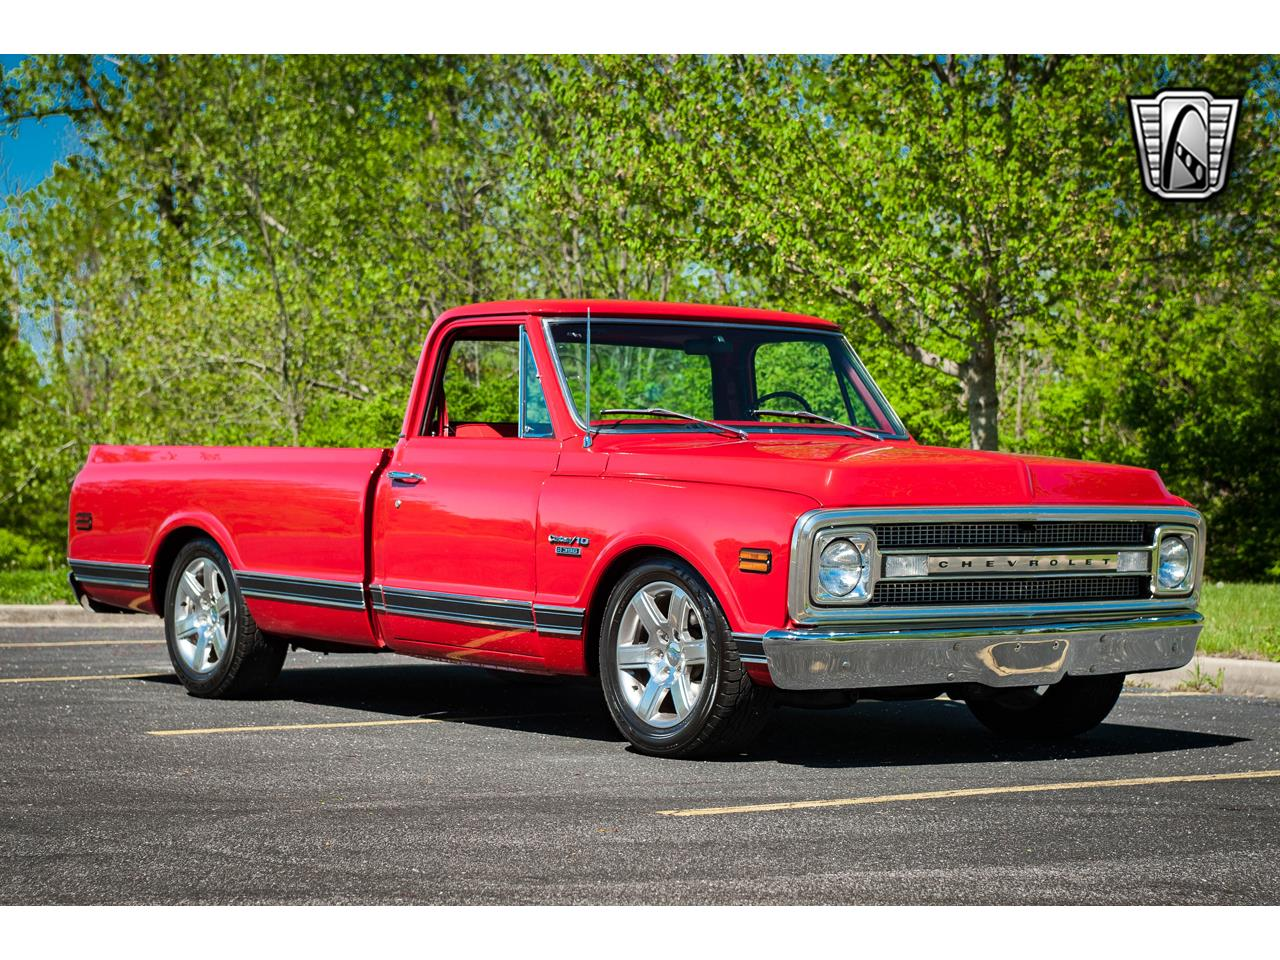 Large Picture of Classic '69 C10 located in O'Fallon Illinois - $44,500.00 - QB8I